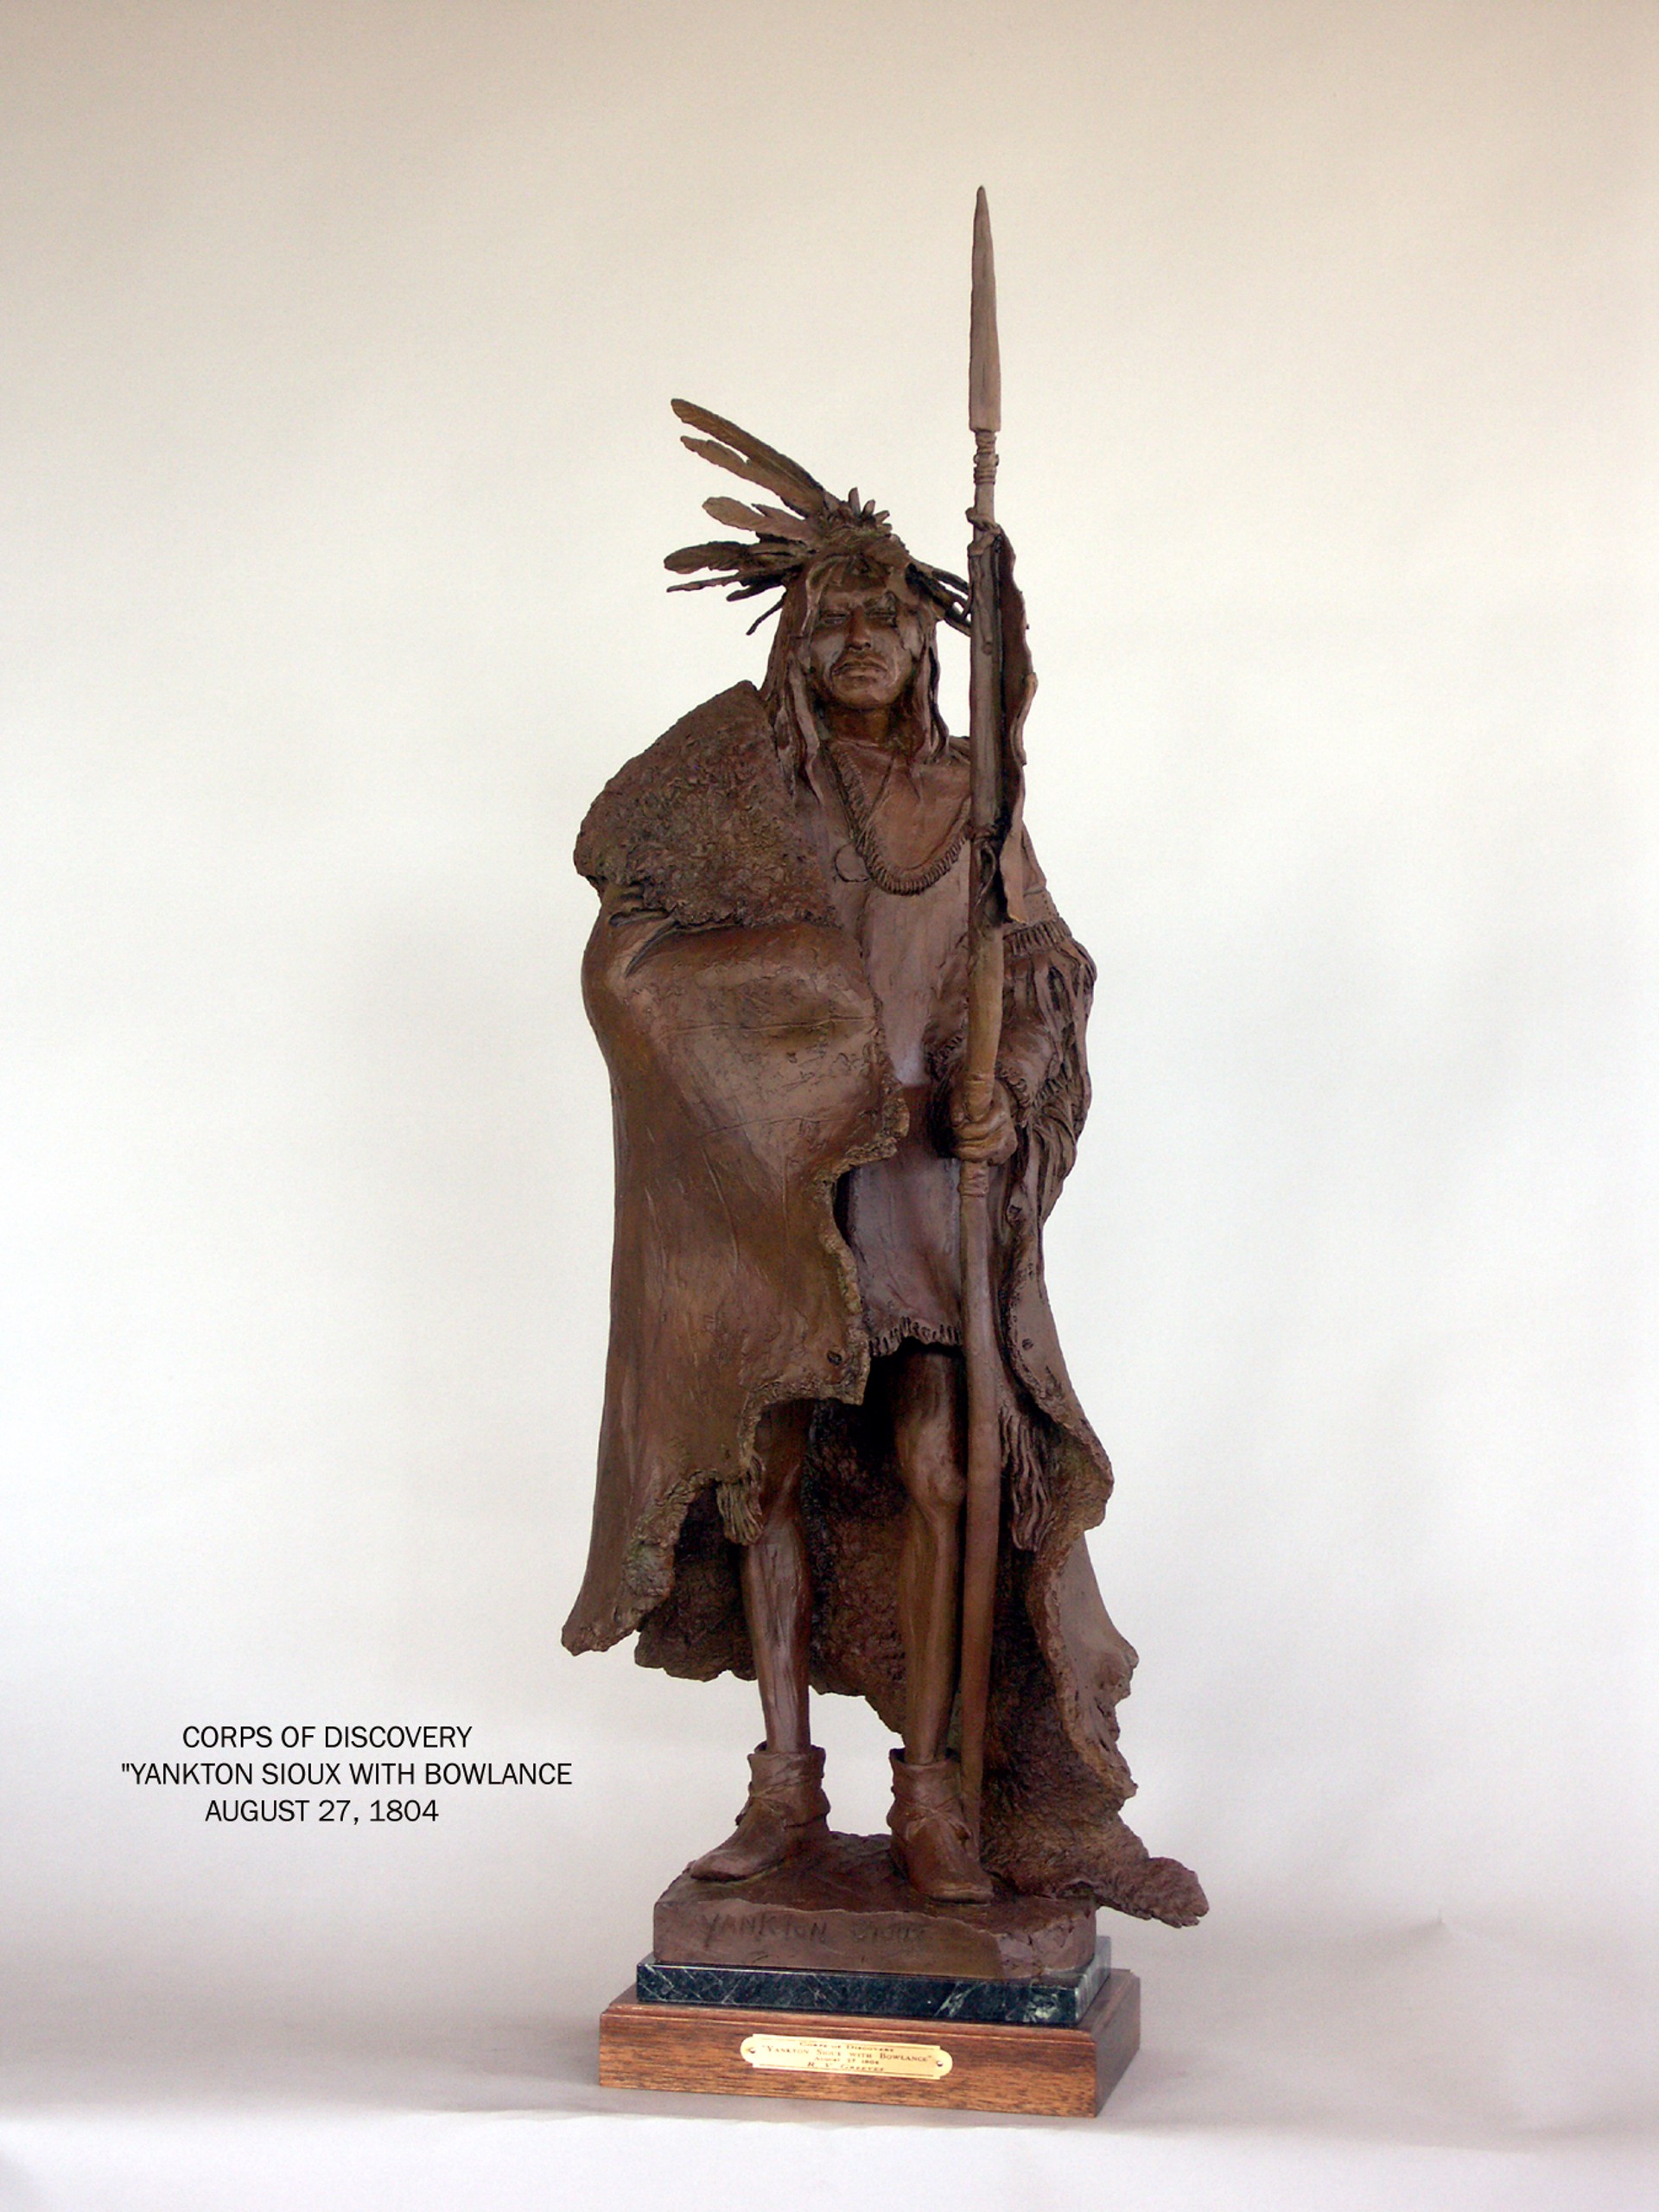 Yankton Sioux with Bowlance by Richard Greeves